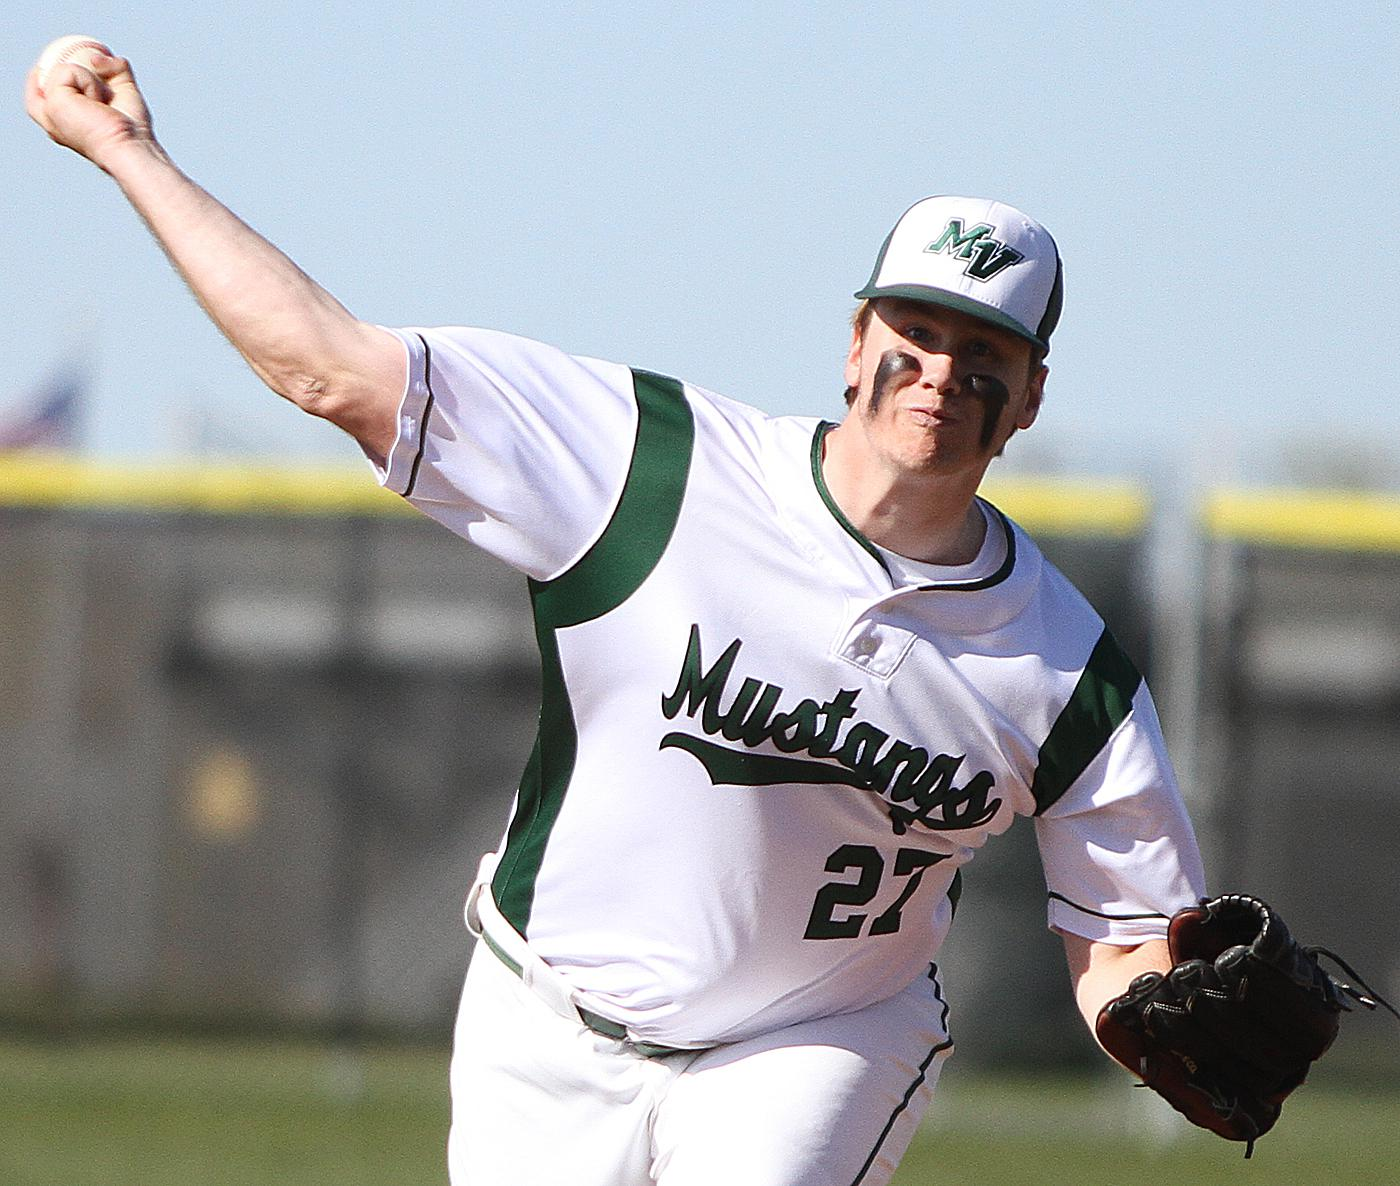 Mounds View righthander Ben Rosin delivers a pitch during the second inning Wednesday afternoon at Mounds View High School. Rosin threw a complete game and struck out seven in the 1-0 loss. Photo by Drew Herron, SportsEngine